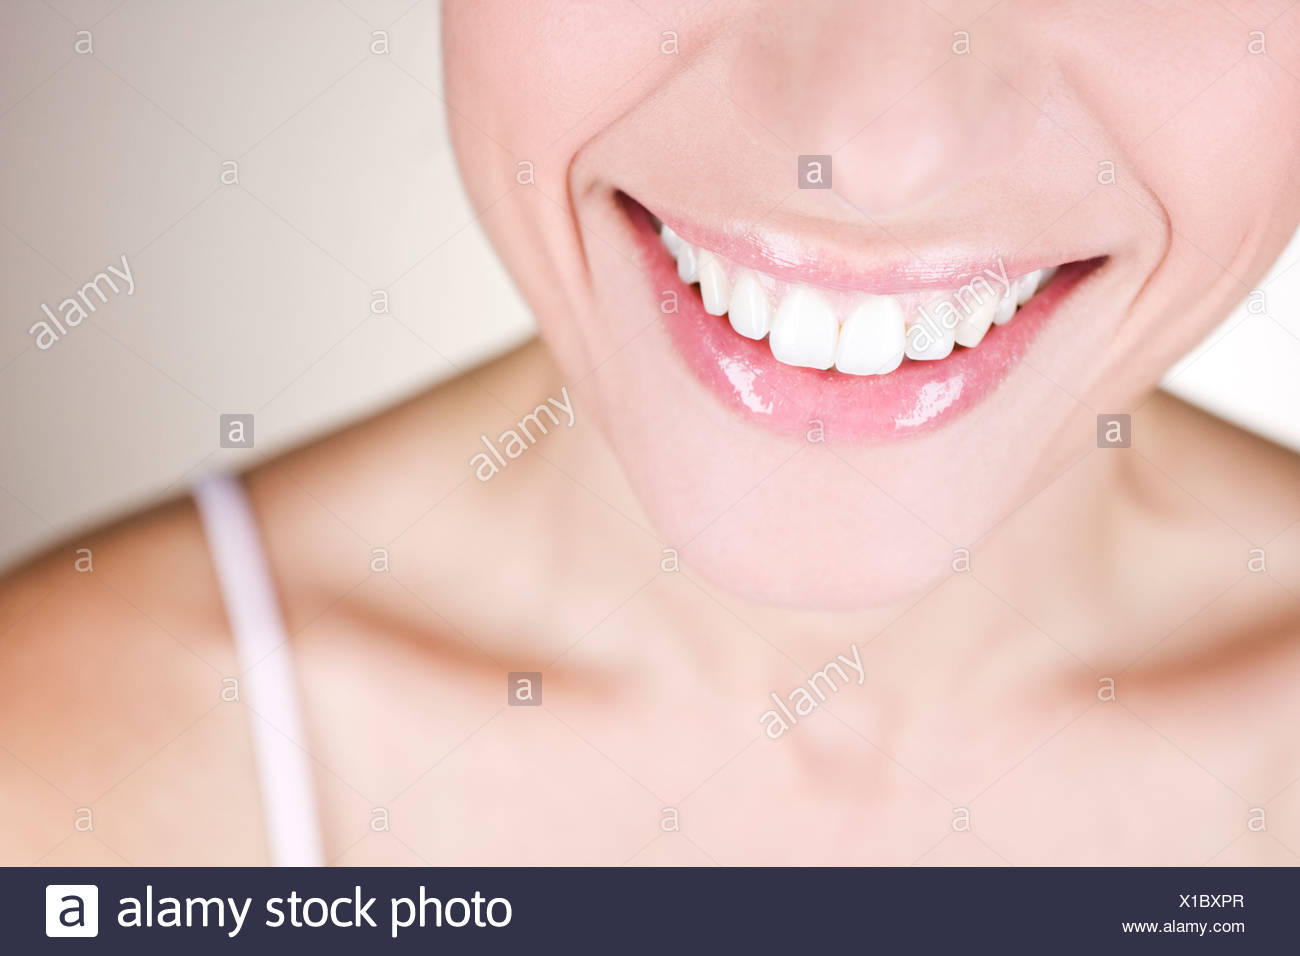 A young woman smiling, close-up - Stock Image